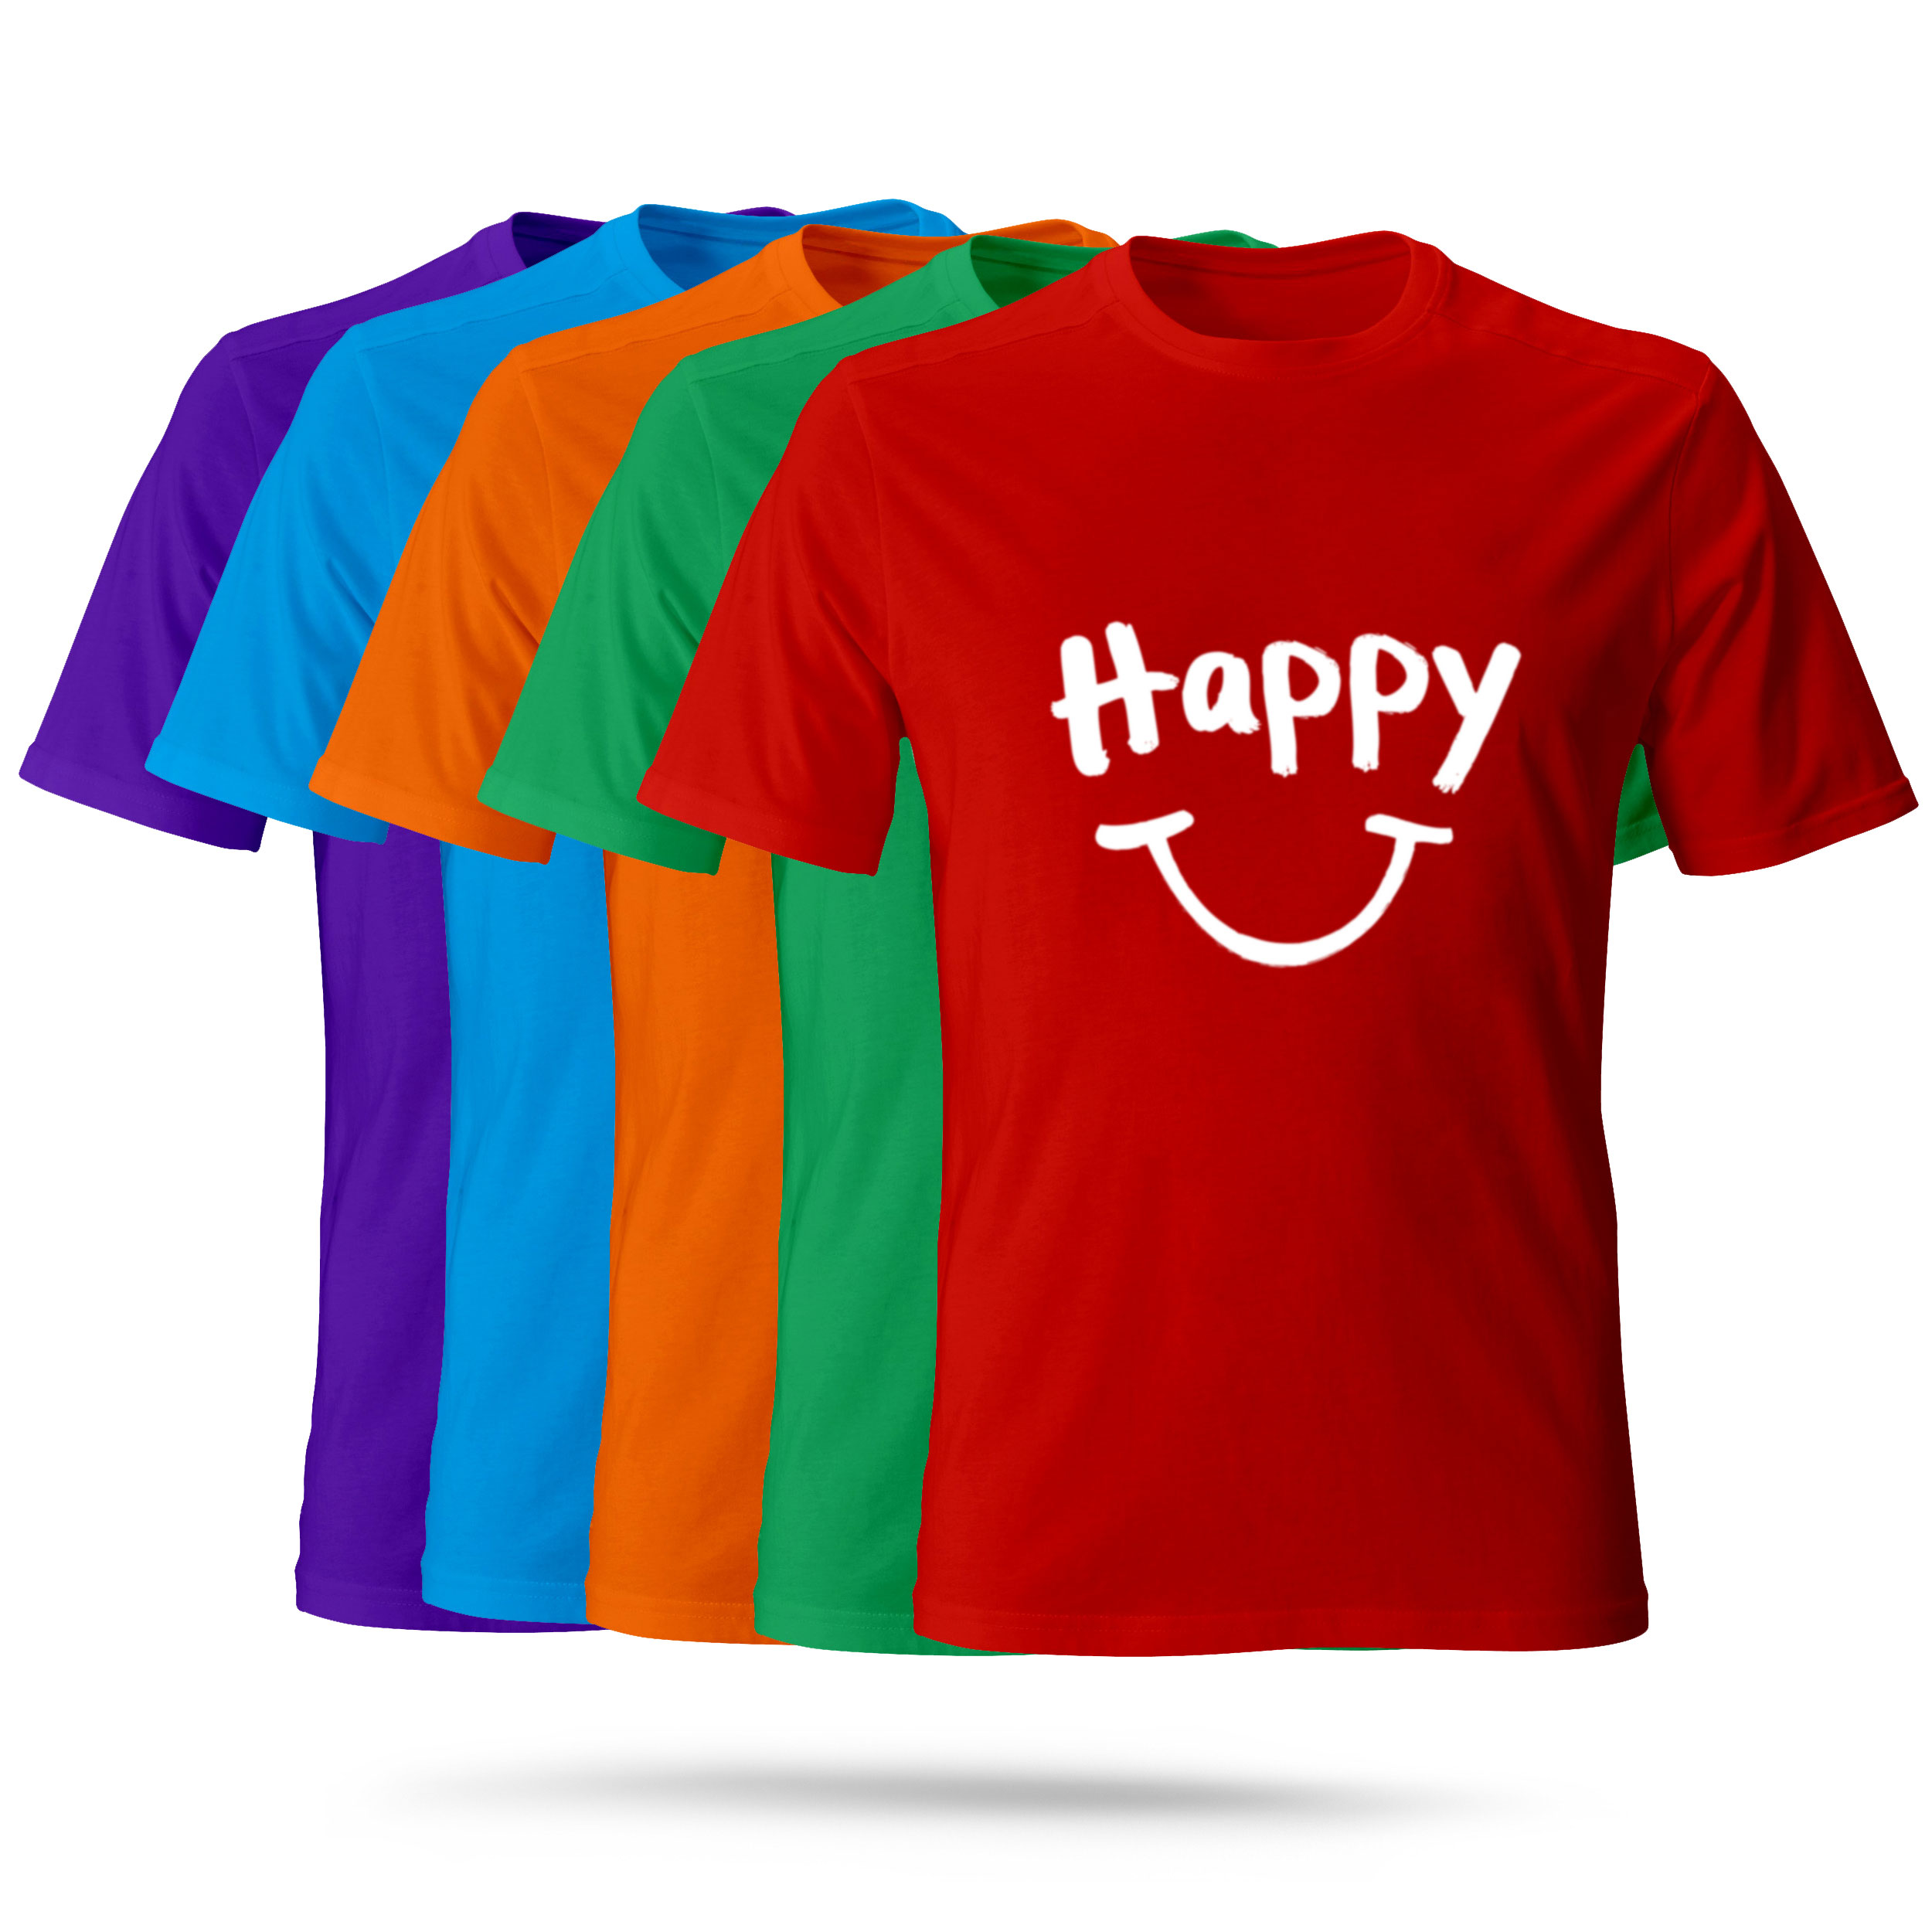 Best quality 100% cotton o-neck short sleeve t-shirt for men from bangladesh